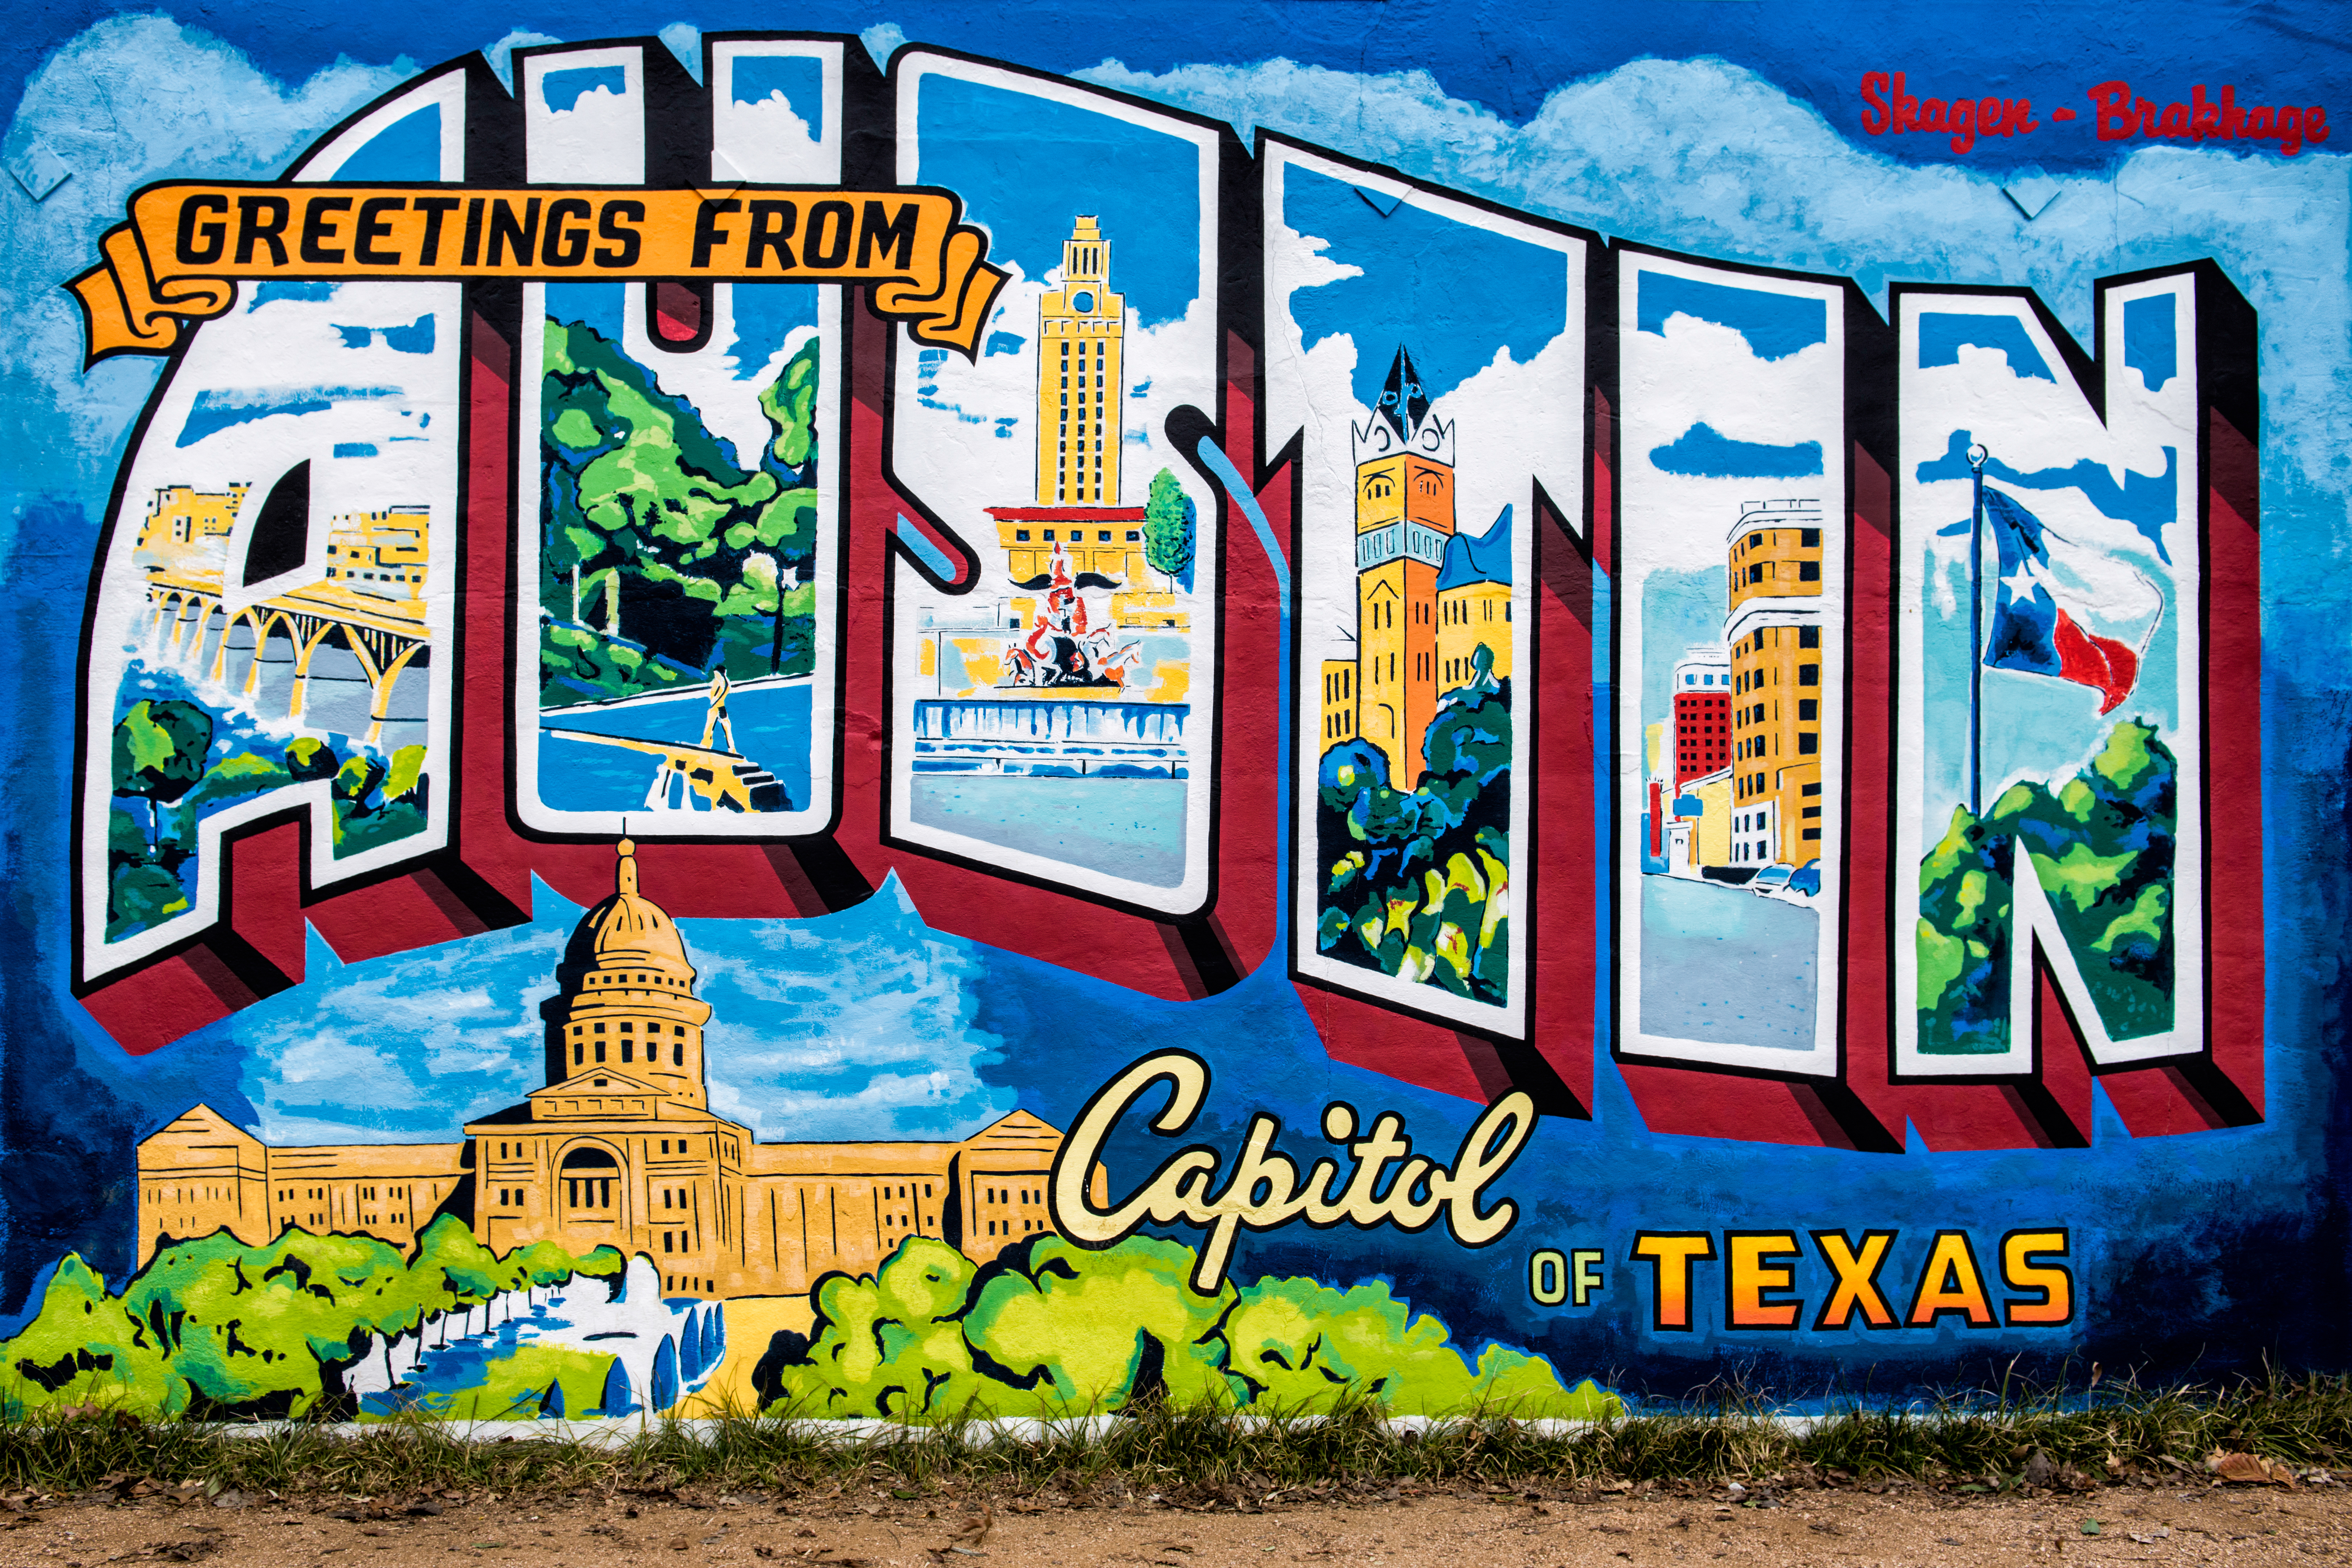 """Mural that looks like a postcard that says """"Greetings from Austin: Capitol of Texas"""""""